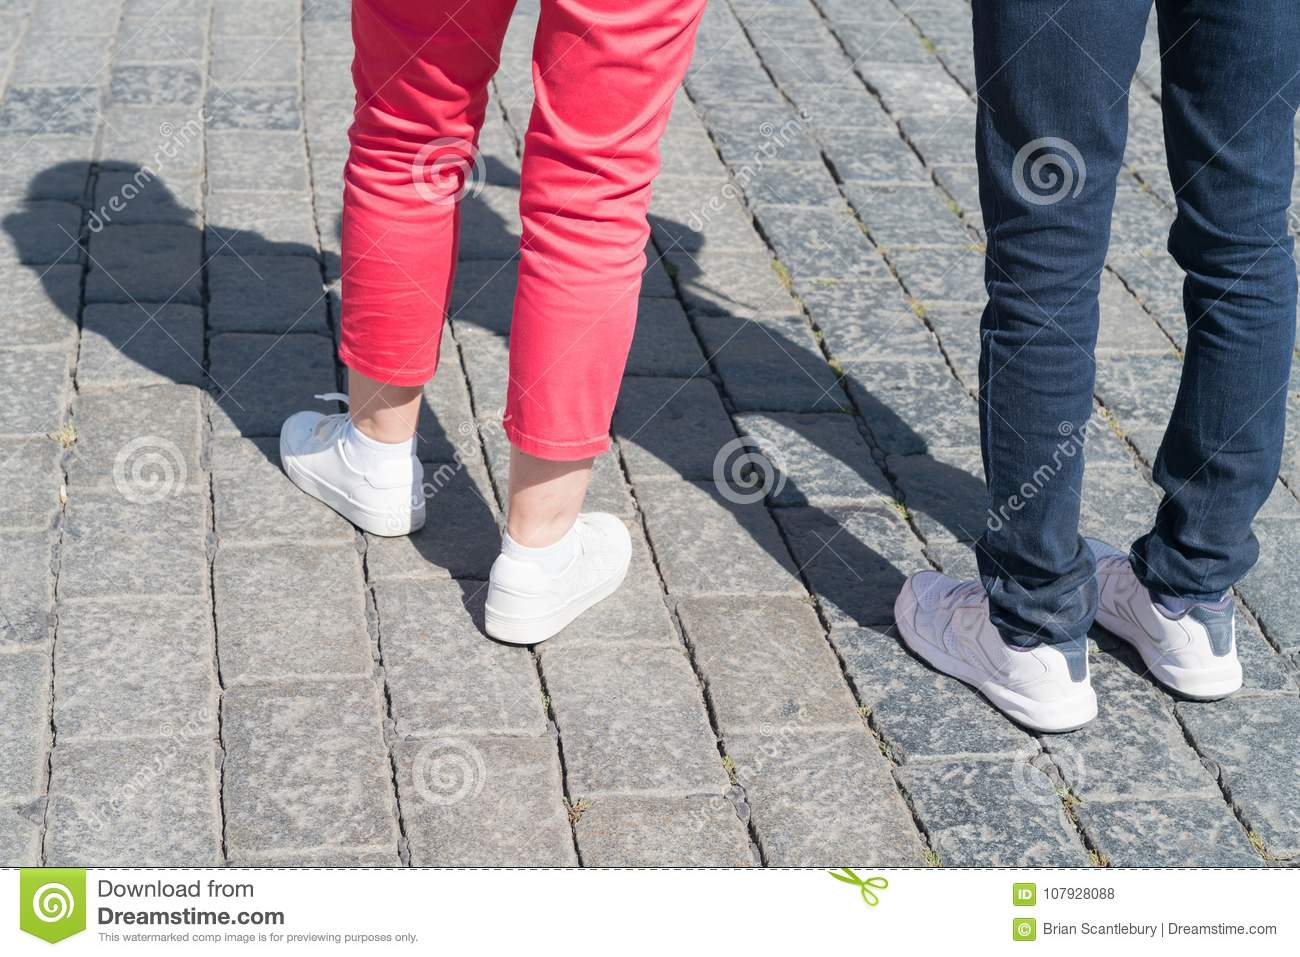 914b9726e Legs Of Two People From Rear Standing Stock Photo - Image of couple ...